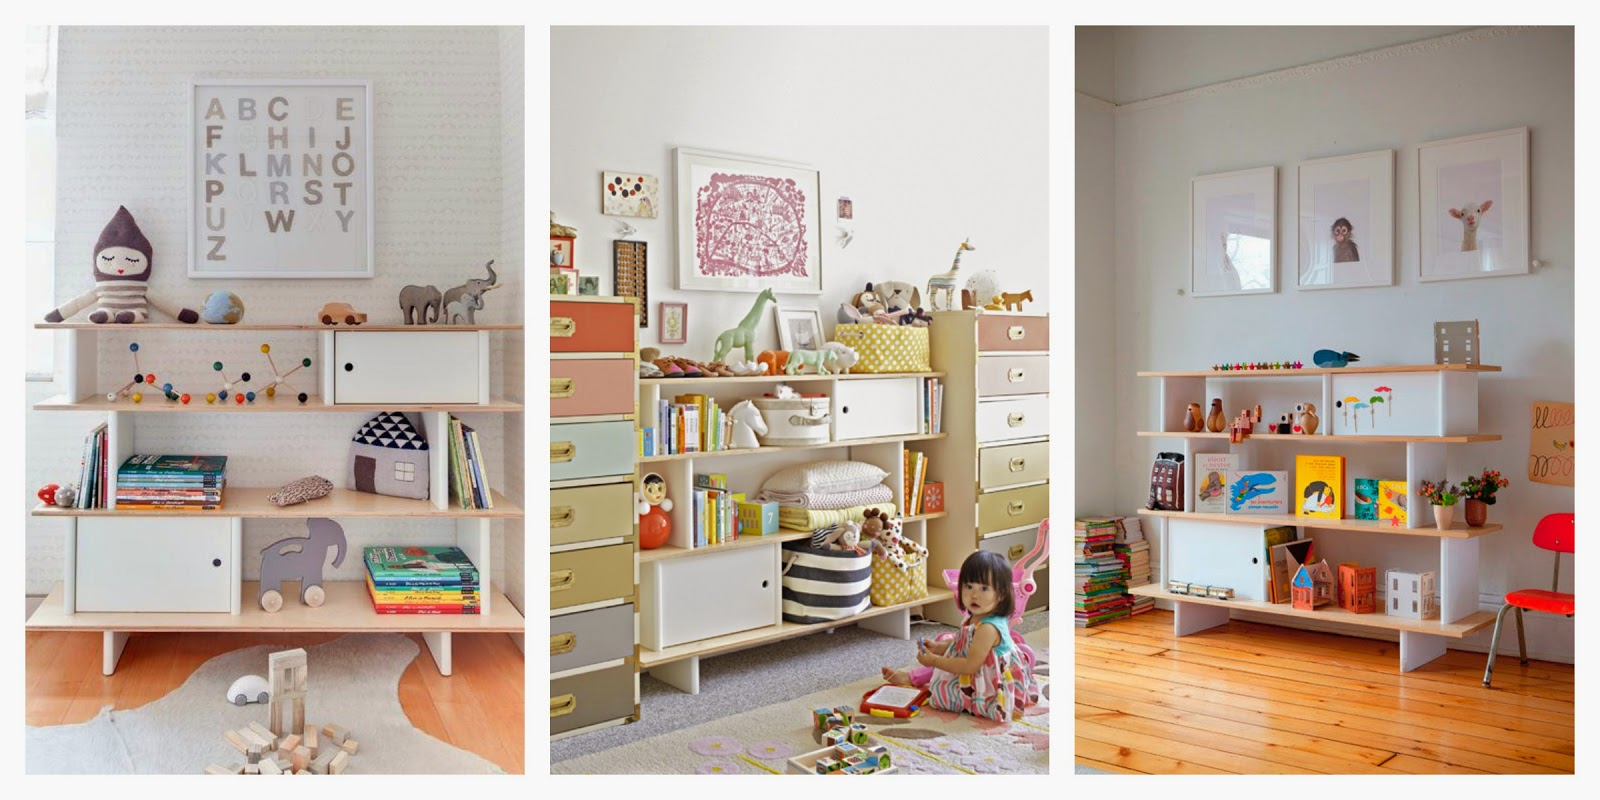 Pinterest | bedroom buys | bedroom style | kids style | kids bedrooms | kids bedroom buys | home decor | ikea | expedite | miff lamp | oeuf shelves | bookshelves | pear print | kids art | bedroom ideas for kids | nursery themes | jennylind beds | land of nod | one fine day | kids beds | style | modern mum must have | oh Joy | mamasVIb | blog | mummy bloggers | bedroom ideas | kids toy storage | bookshelves | v.i. bedroom | very important baby | mama VIB |